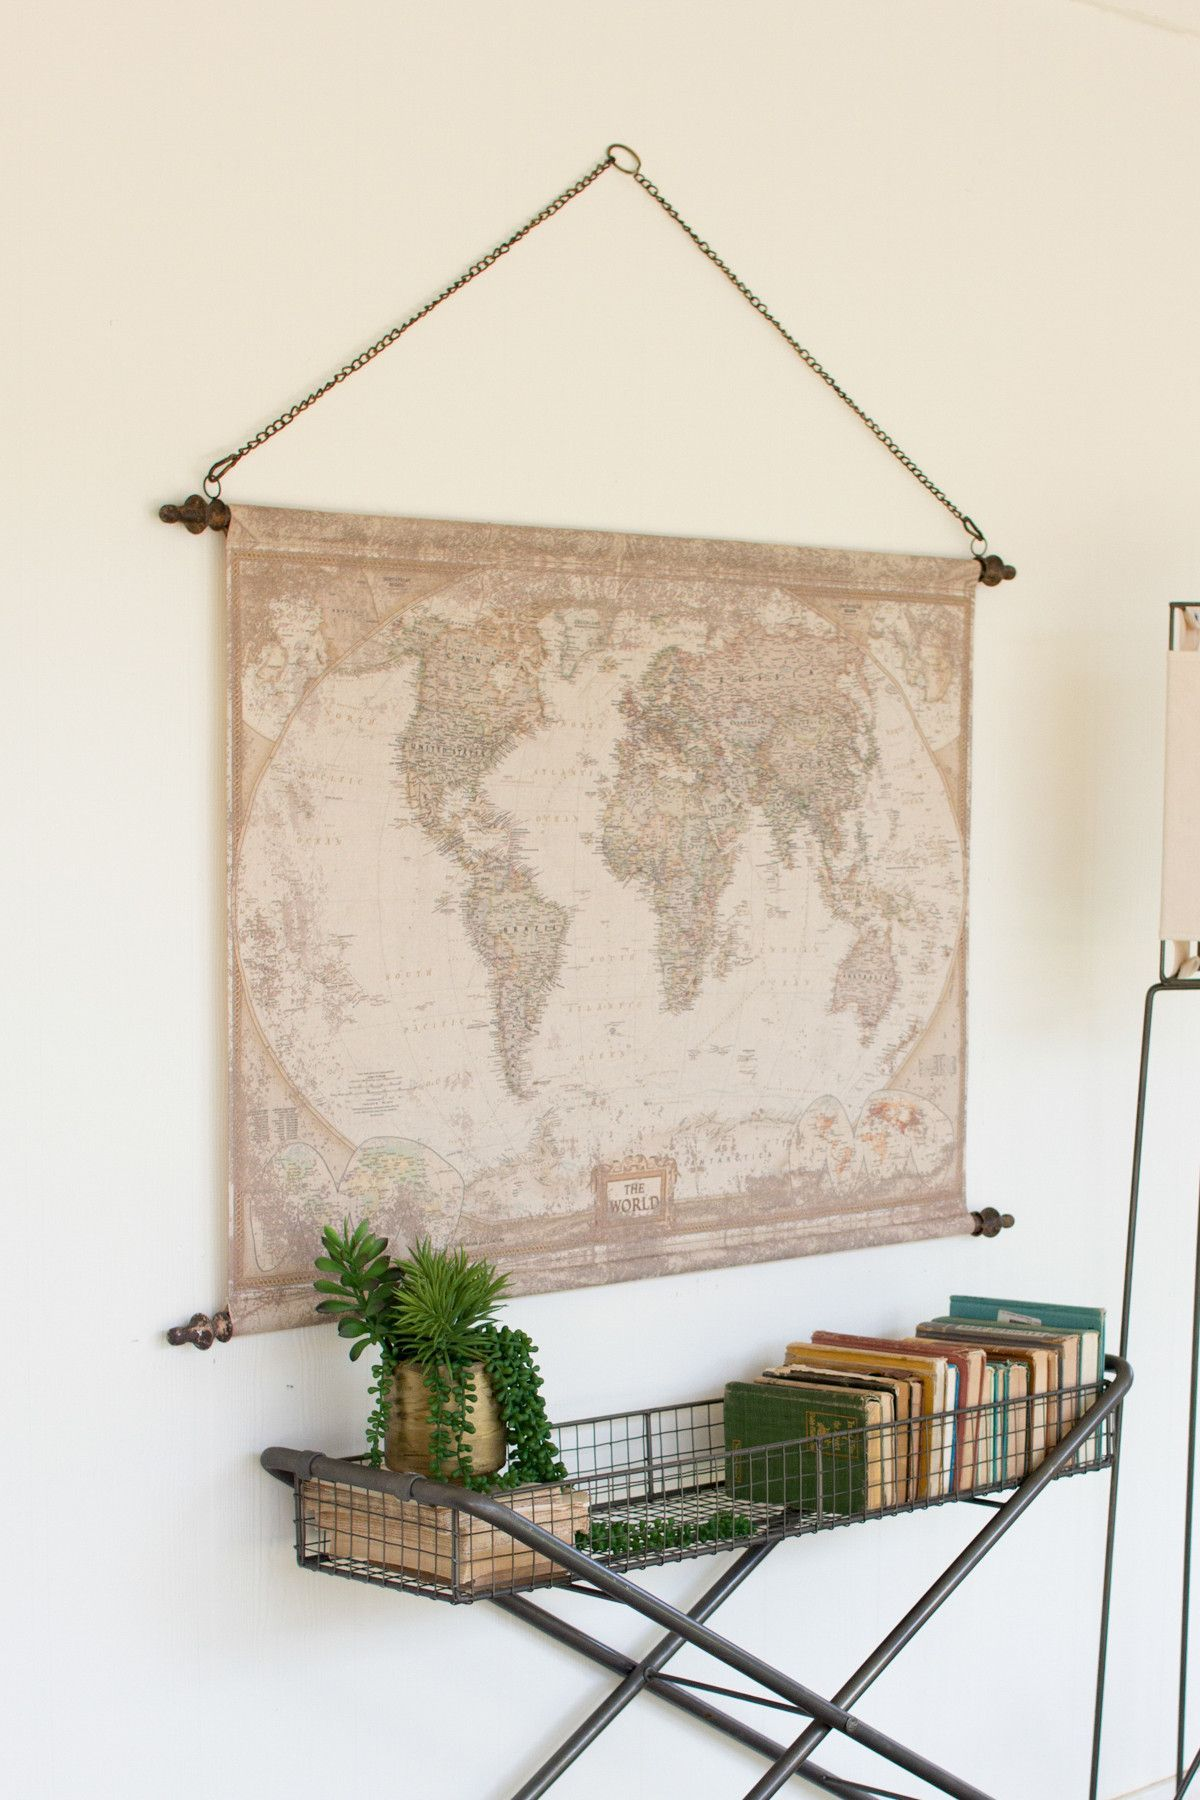 Wandschmuck Esszimmer This Canvas Banner Displays A Beautifully Aged World Map That